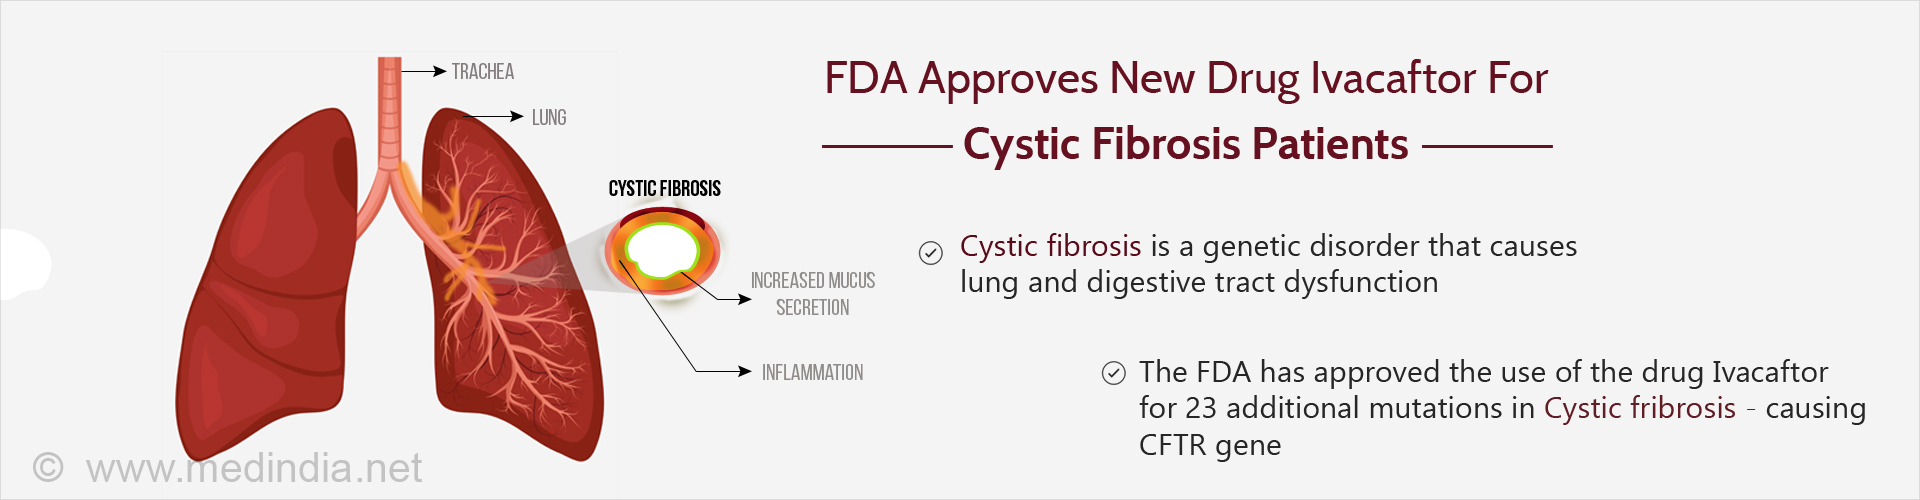 FDA approves new drug Ivacaftor for cystic fibrosis patients